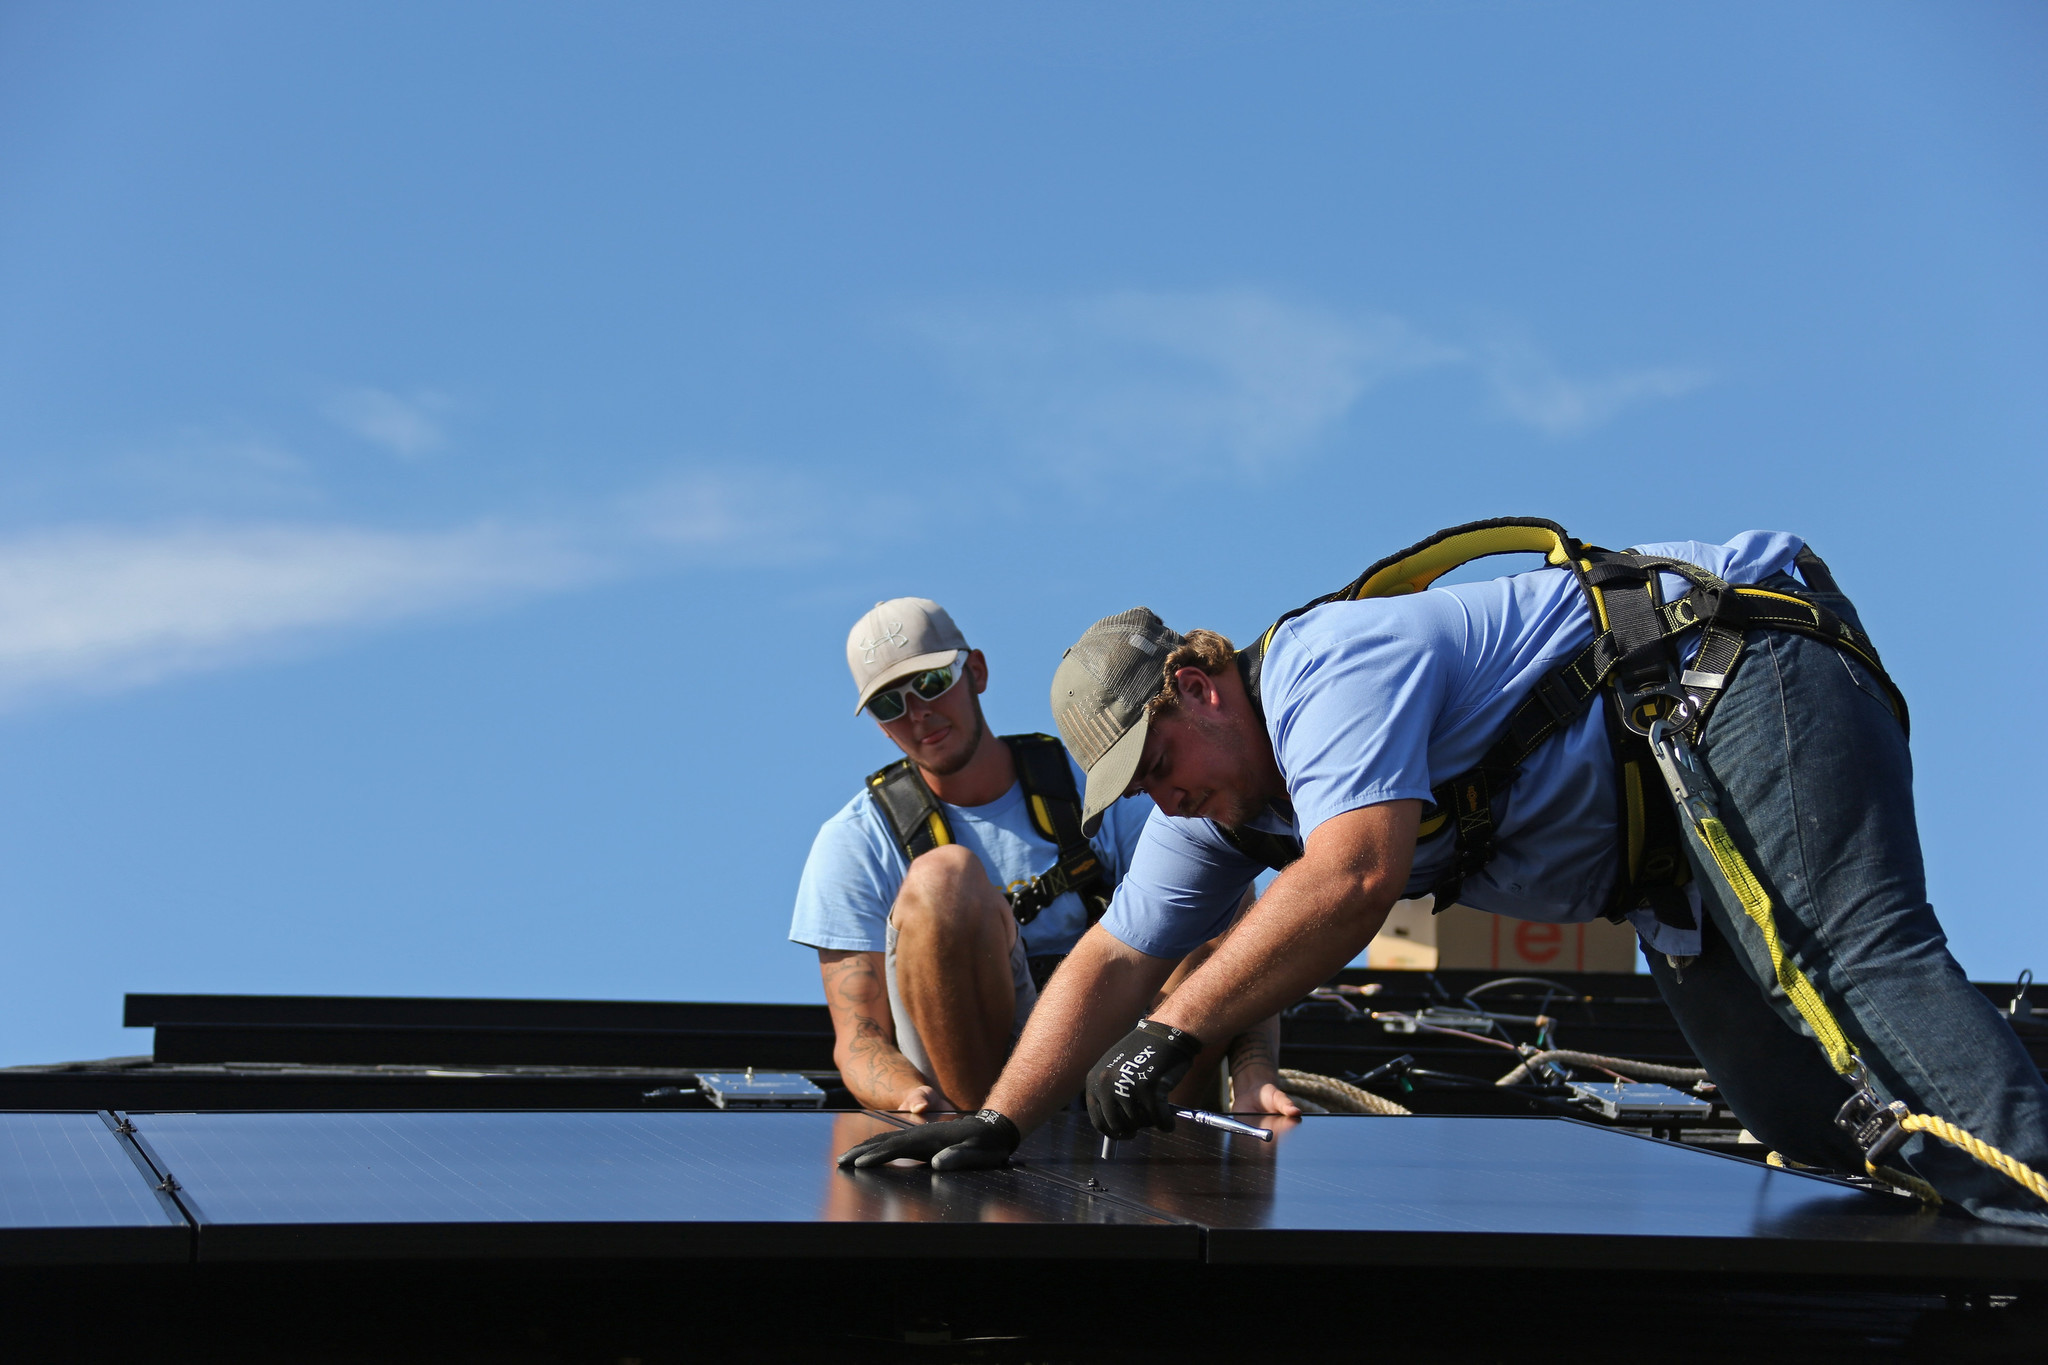 solar sees more interest after amendment 1 failure orlando sentinel